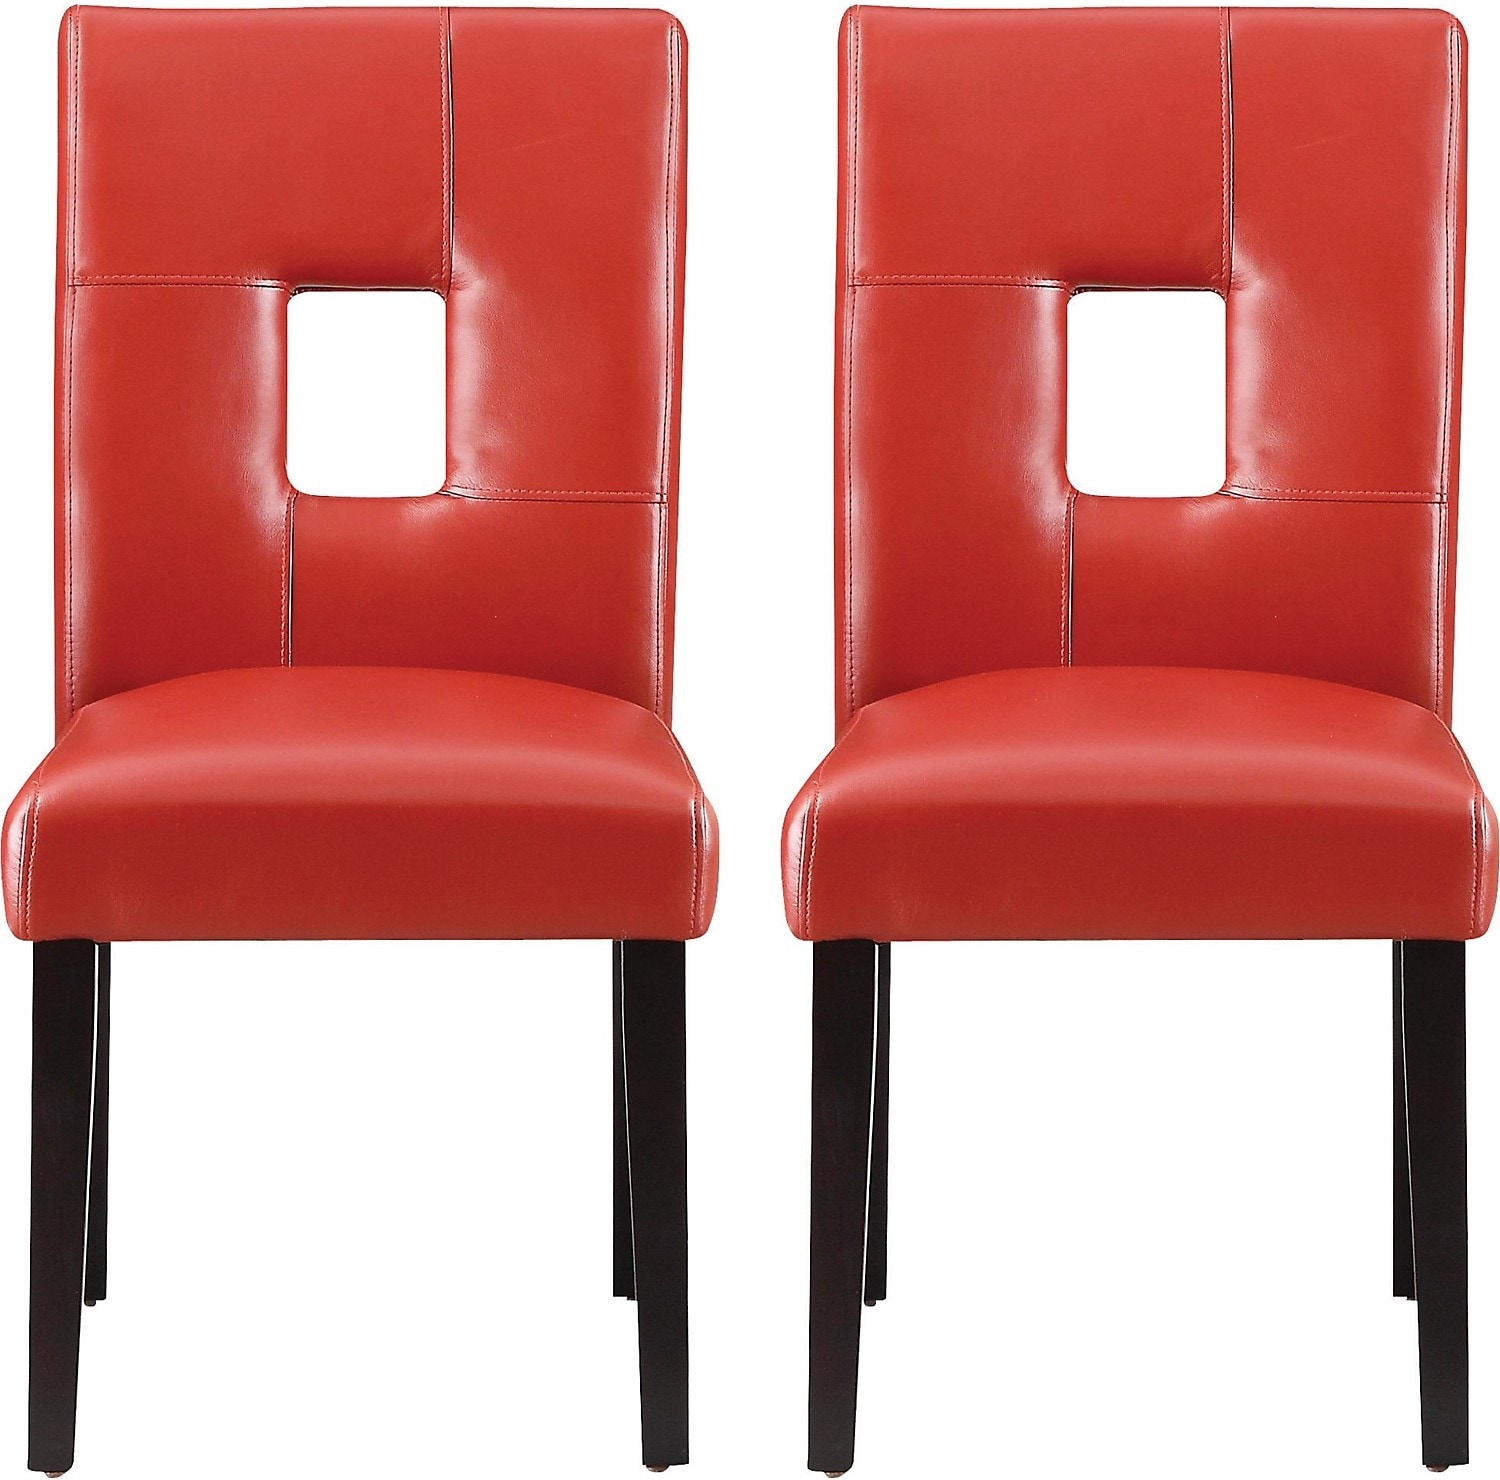 Mckena faux leather red dining chairs package of two for Red dining room chairs